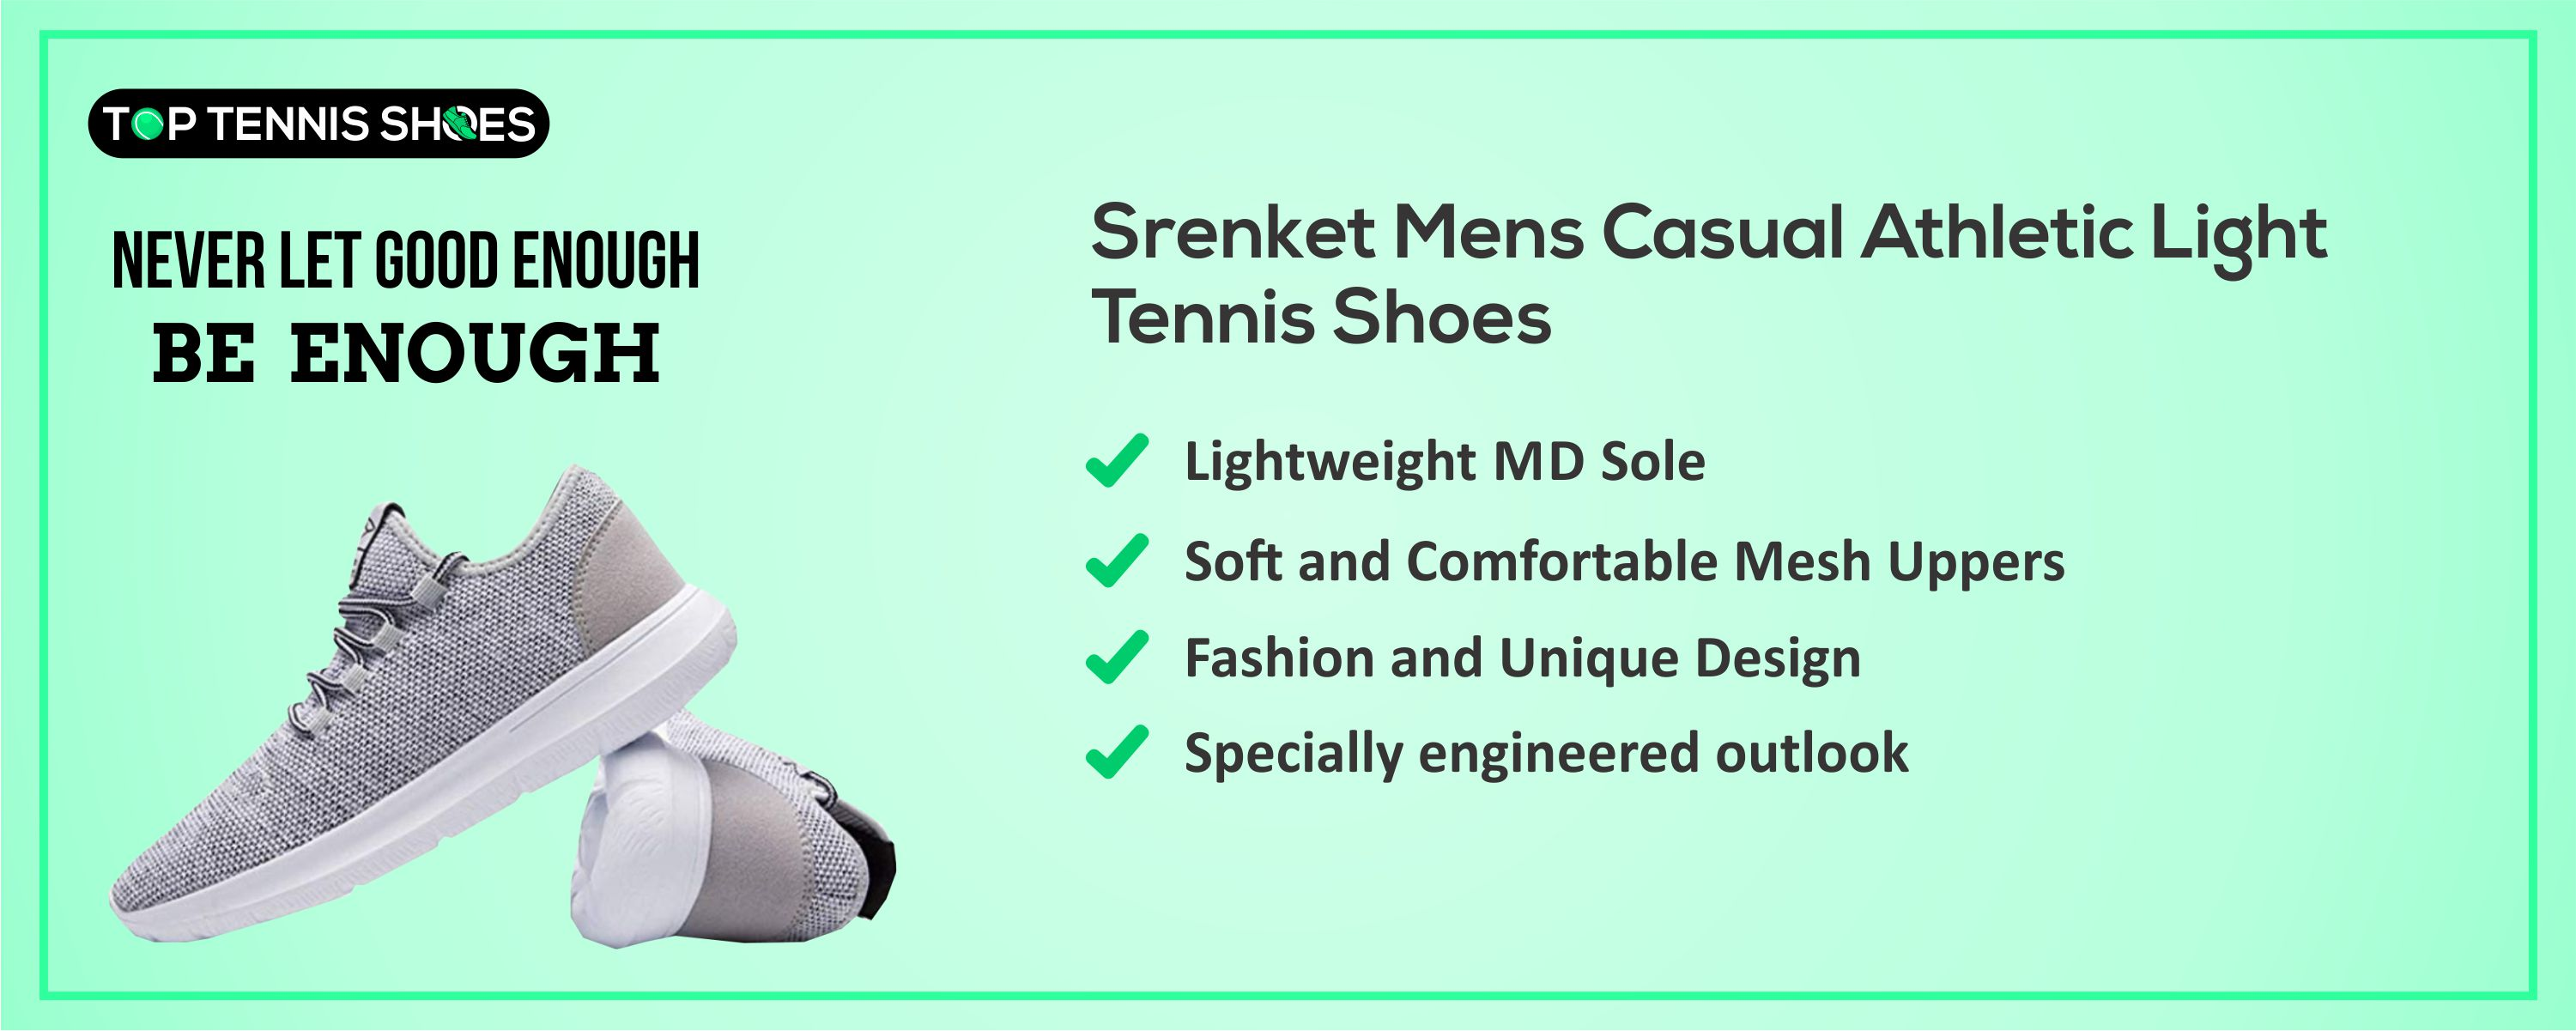 Srenket Mens Casual Athletic Shoes detailed reviews